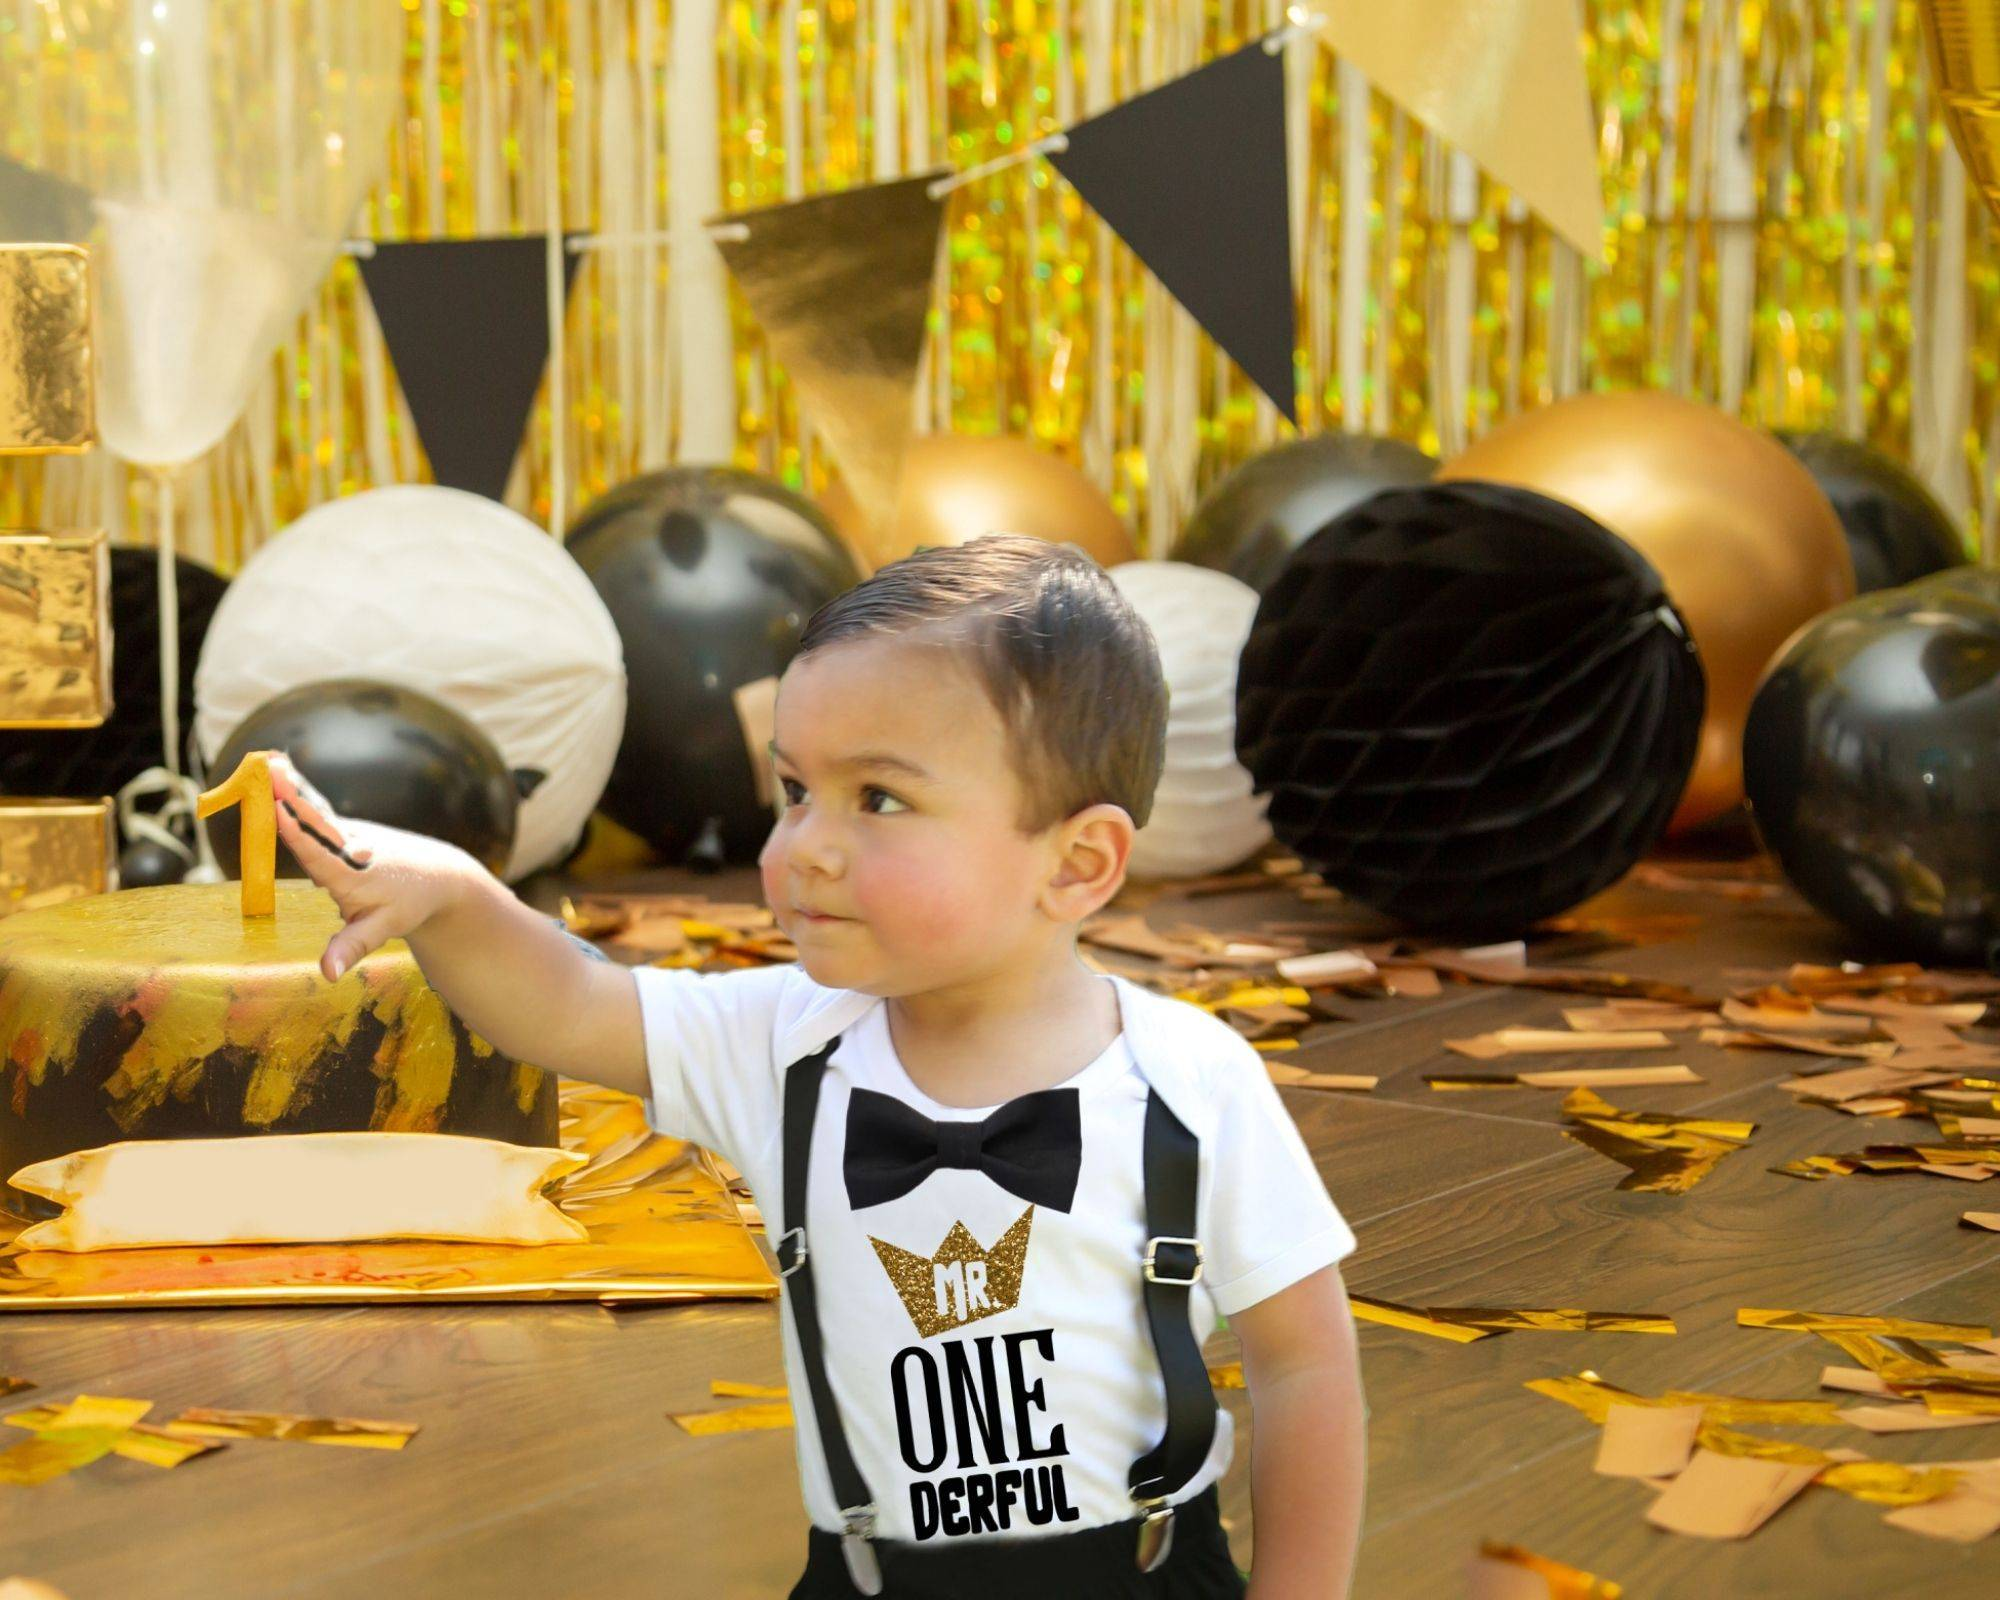 Boys Winter 1st Birthday Outfit Winter 1st Birthday Boy Bodysuit Mr One derful Boy Bodysuit Mr ONE derful Birthday Boy Outfit